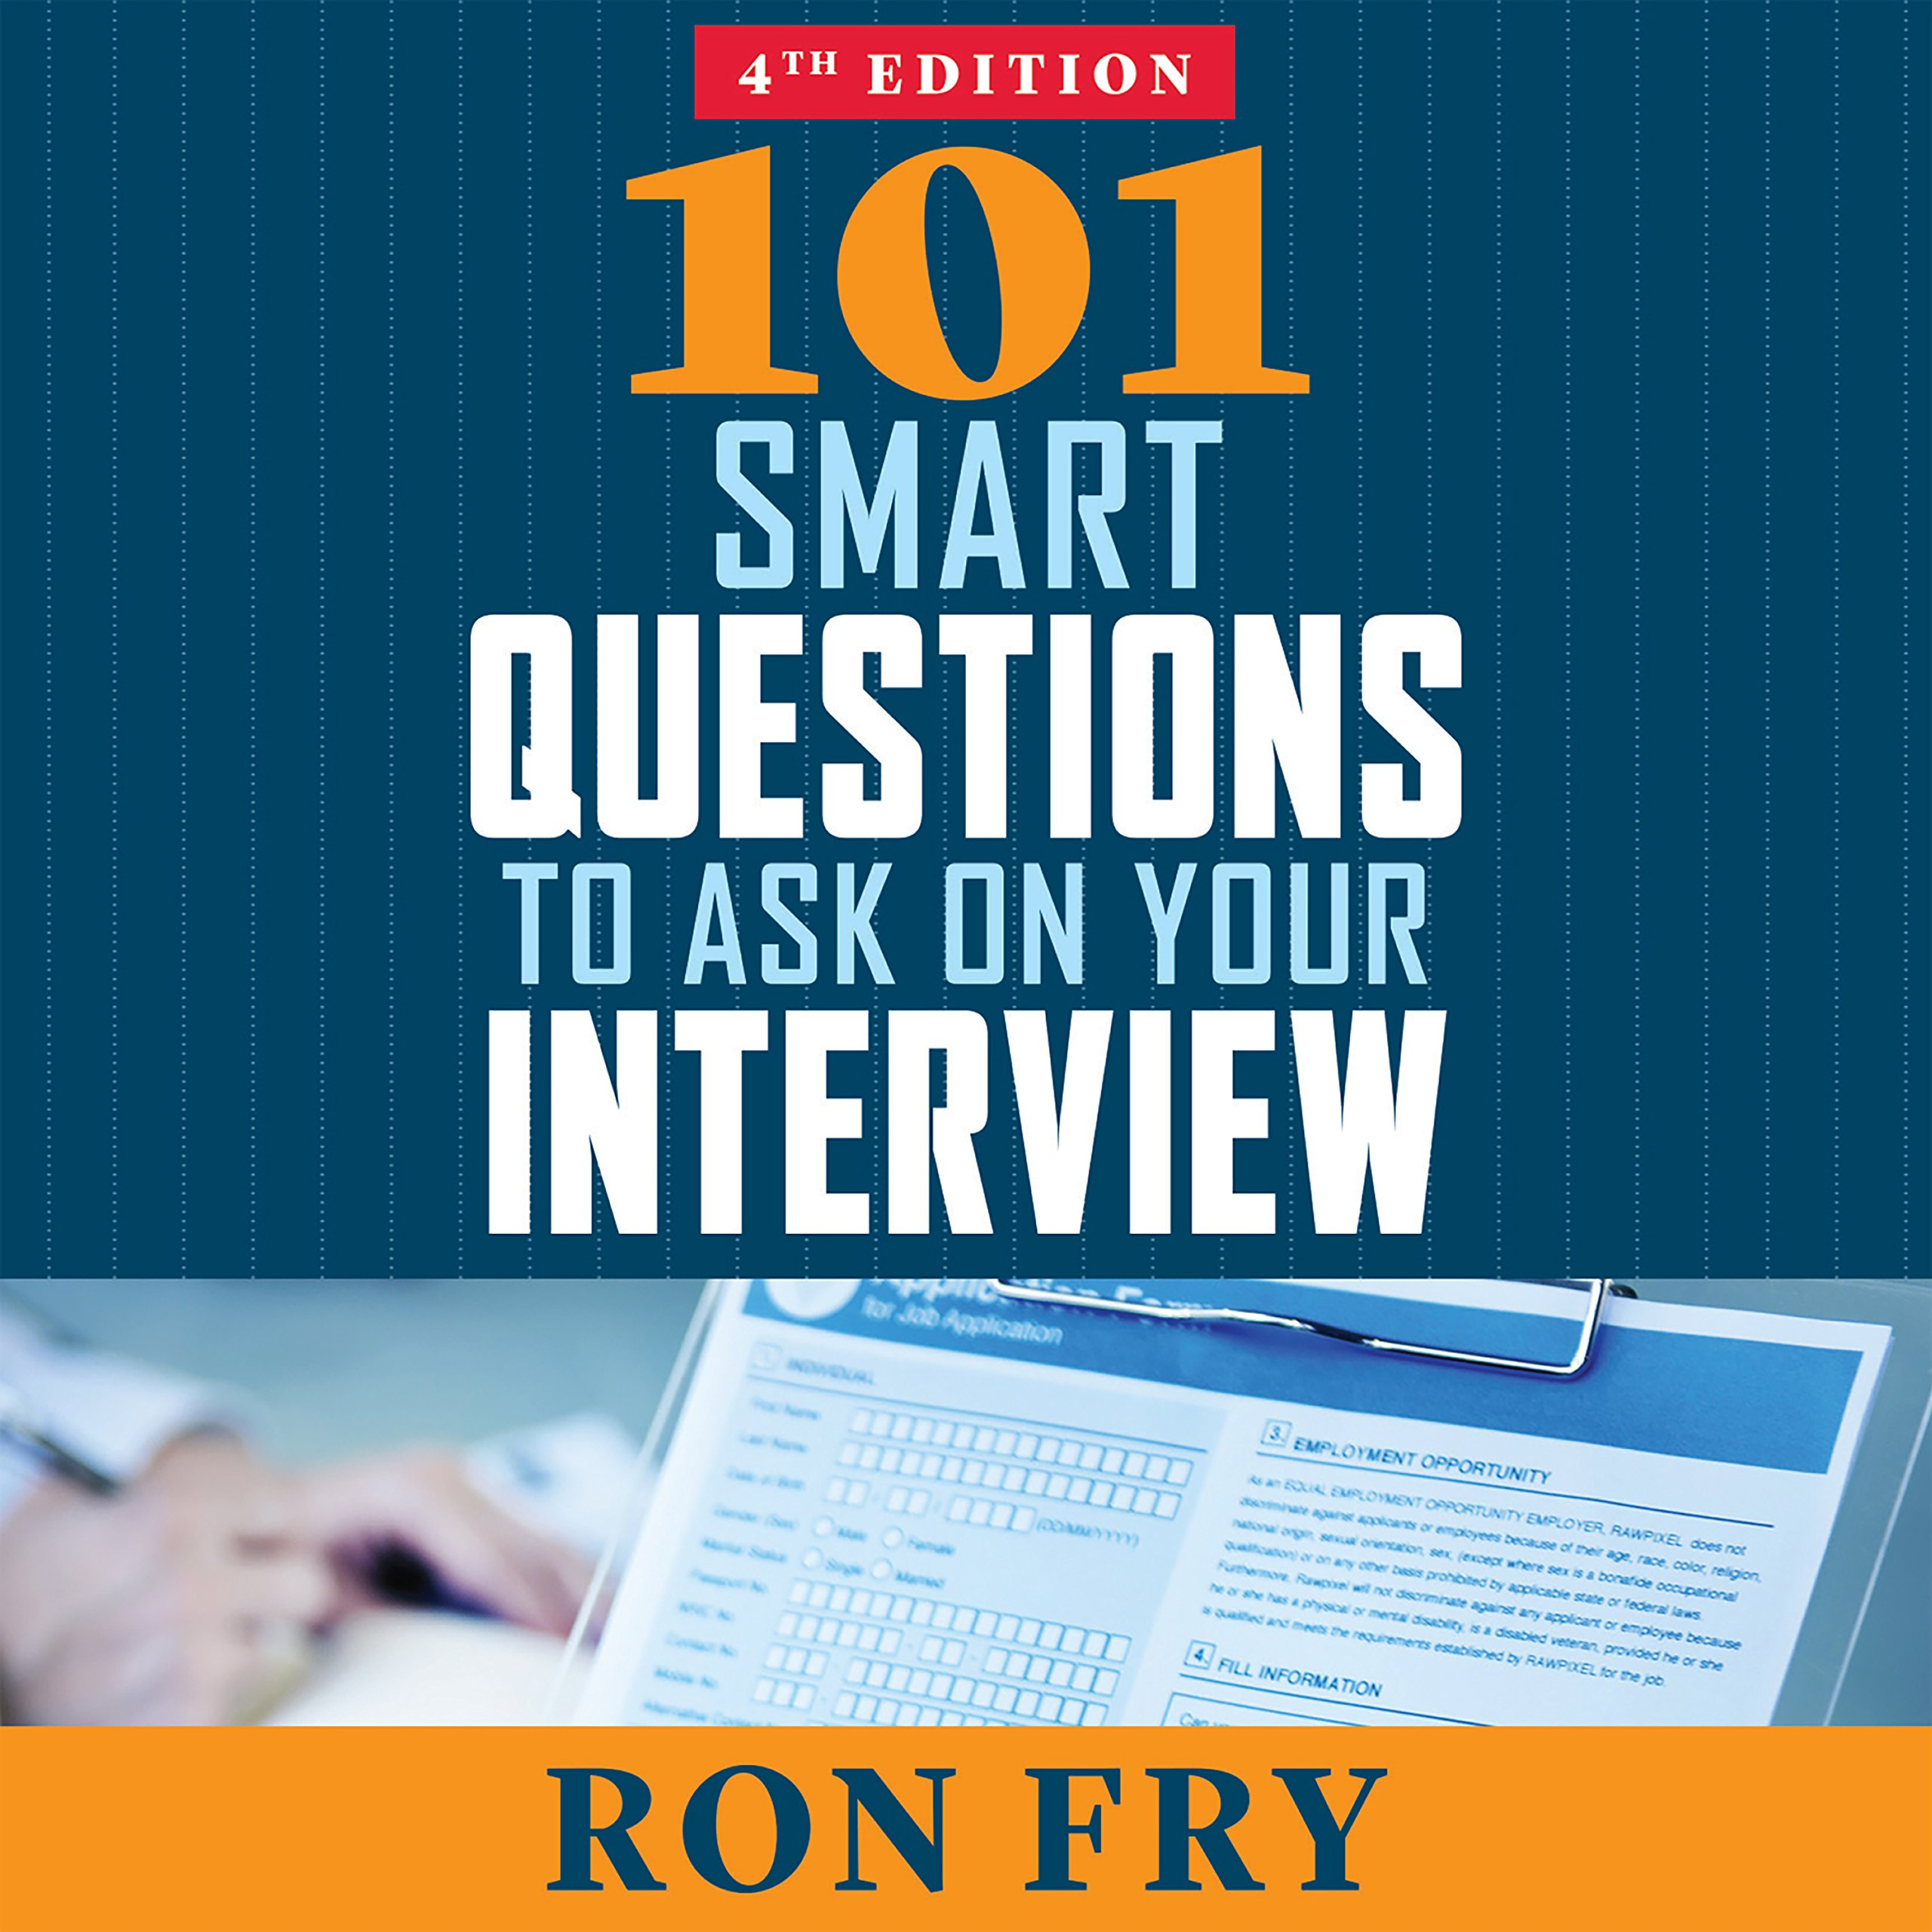 101 Smart Questions to Ask on Your Interview: Amazon.co.uk: Ron Fry:  9781681680309: Books